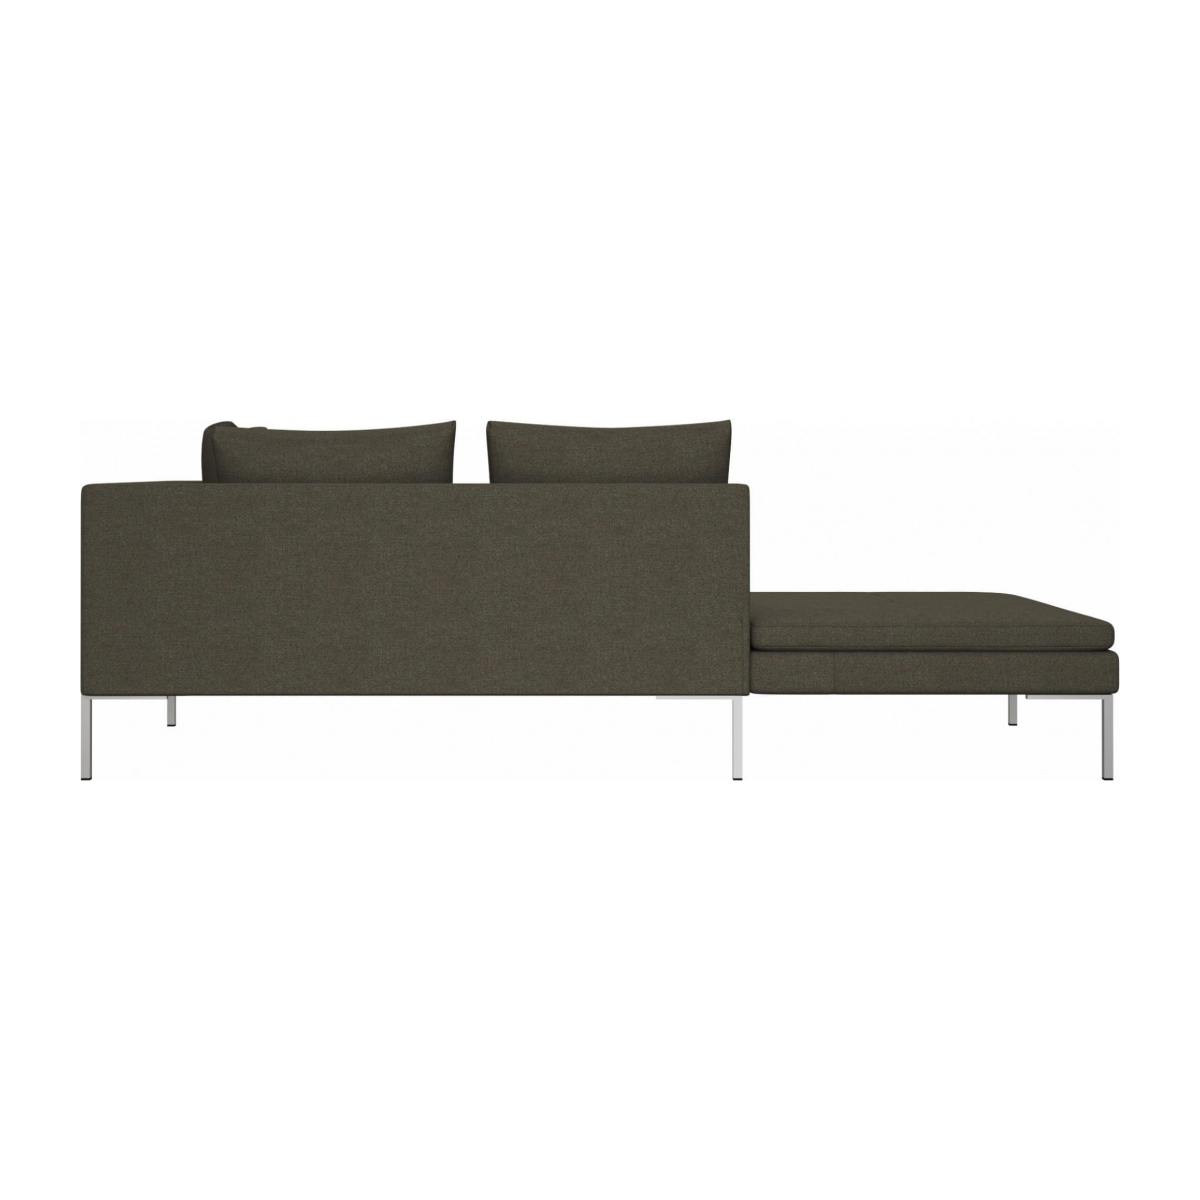 Left chaise longue in Lecce fabric, slade grey n°3